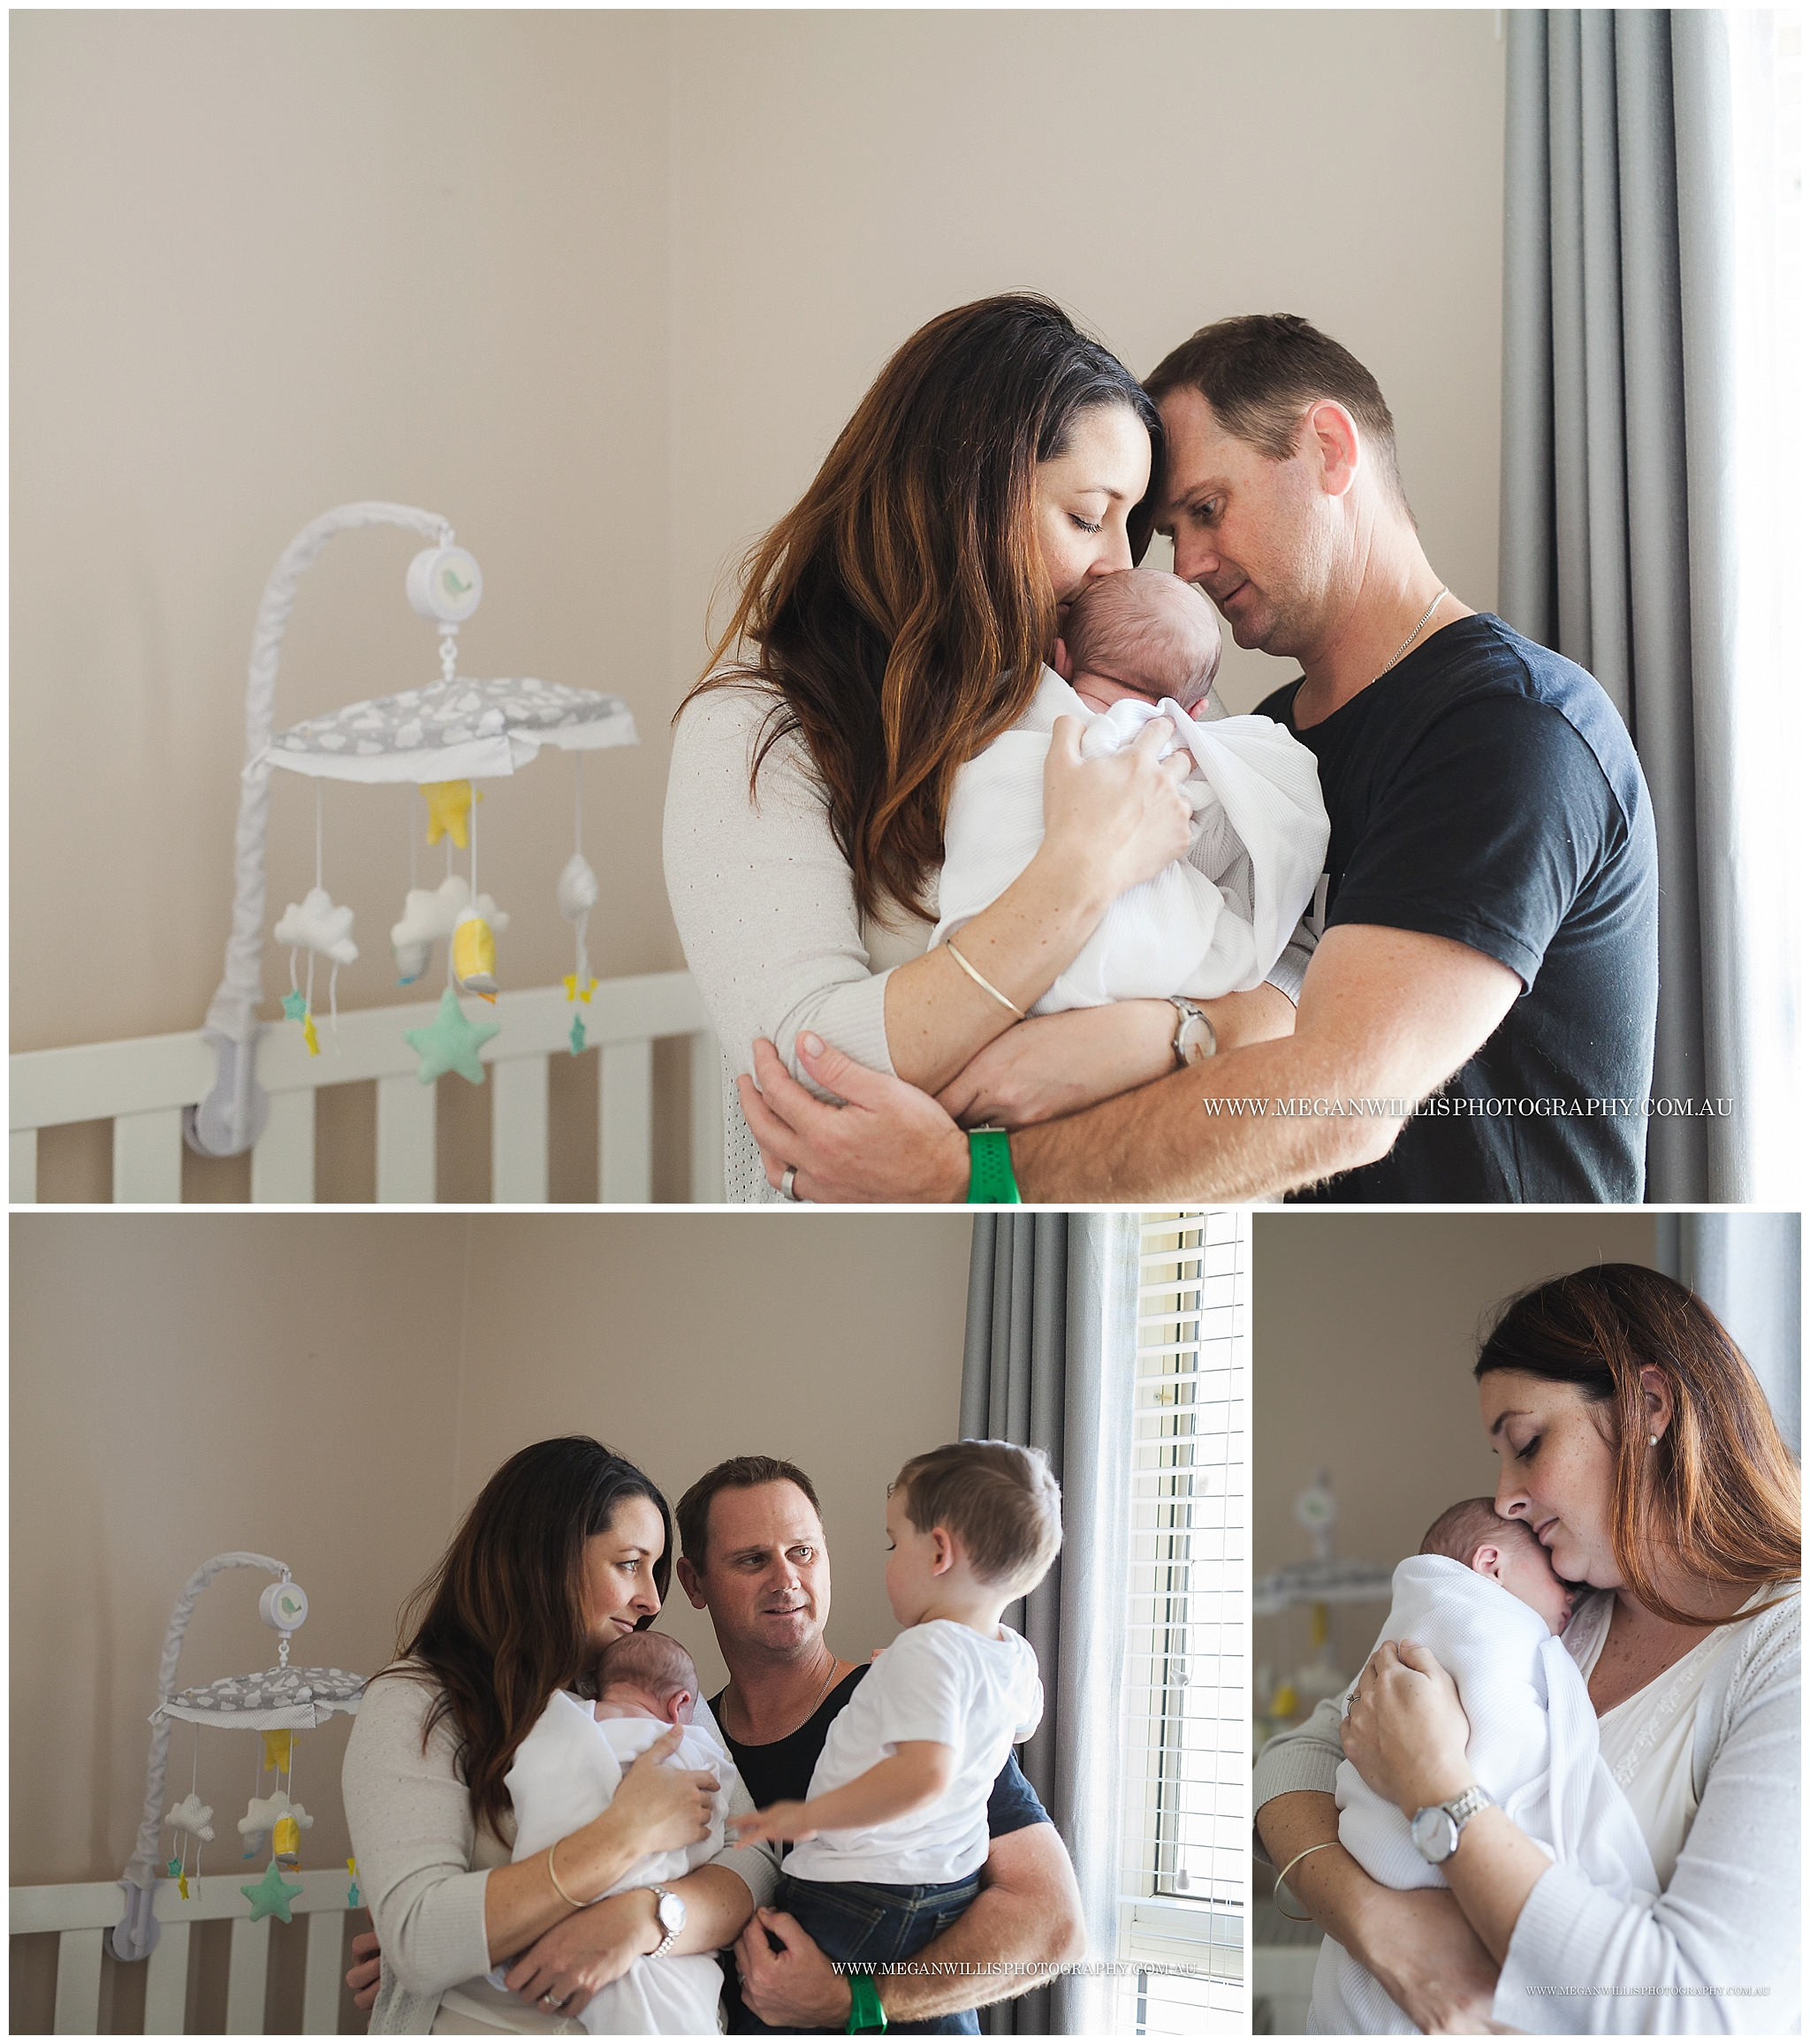 Max // 9 days // Lifestyle Newborn Session